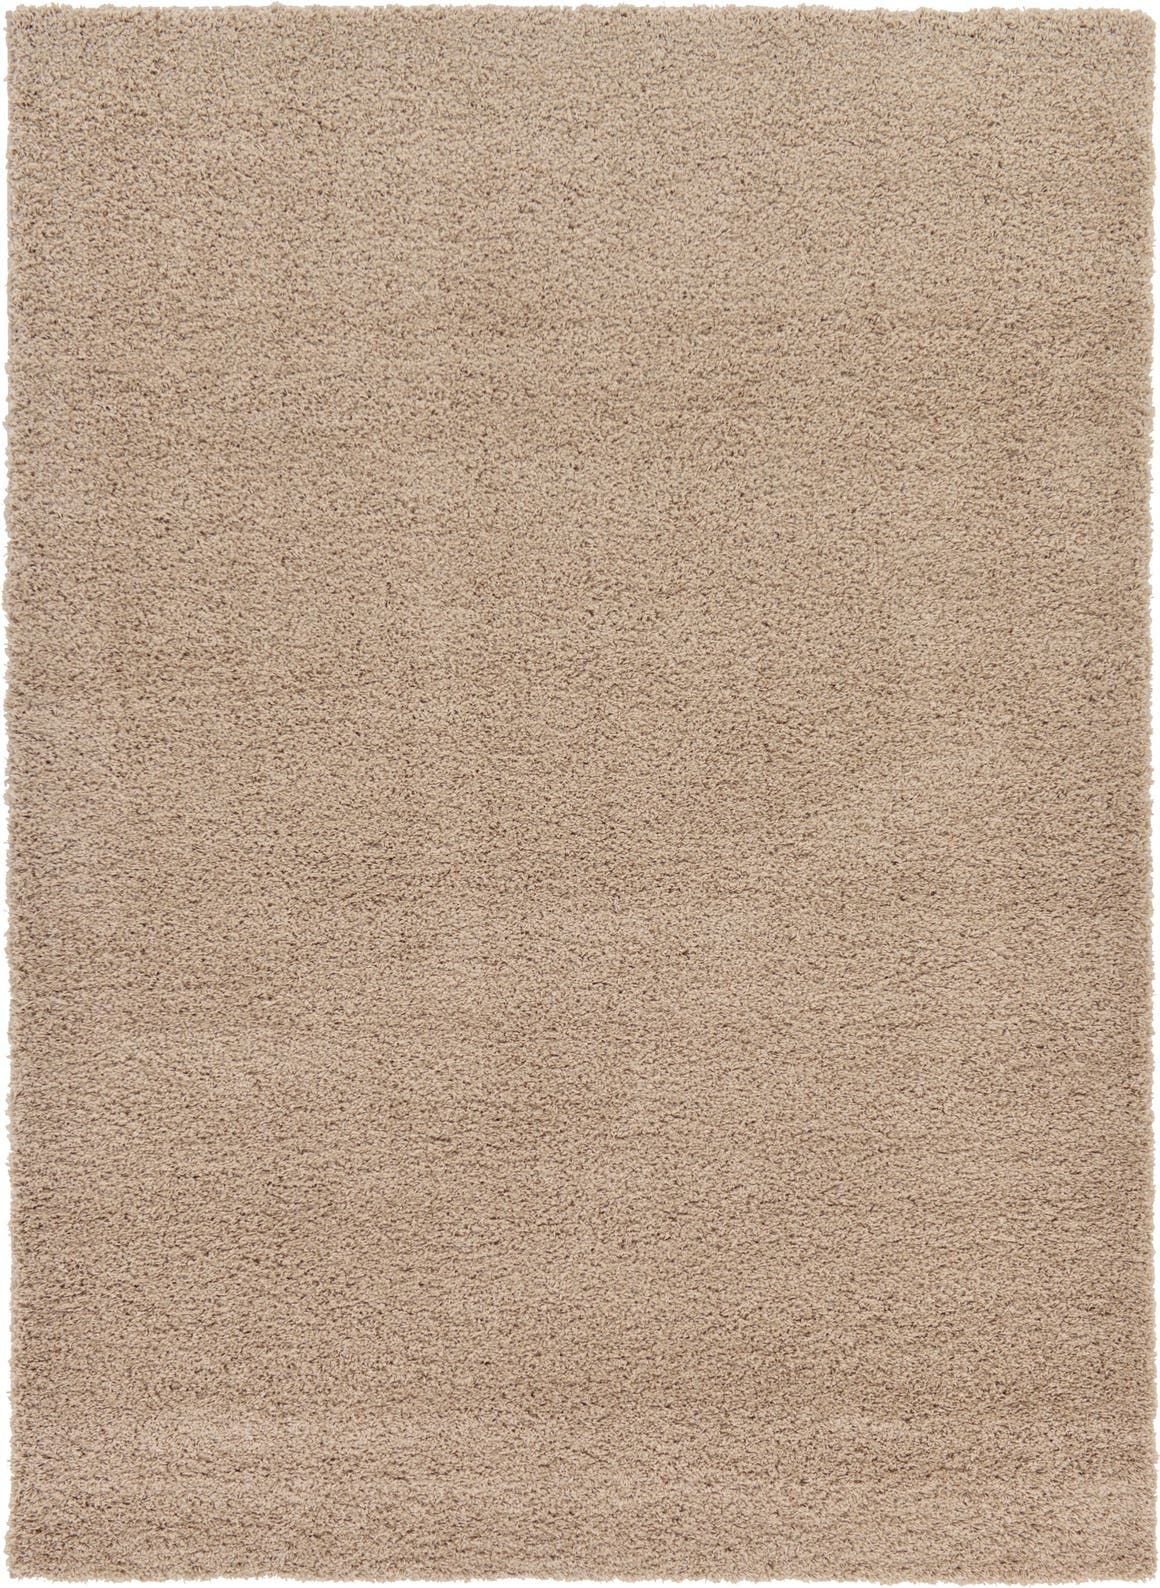 Taupe Solid Shag Area Rug In 2020 Rugs Beige Area Rugs Area Rugs